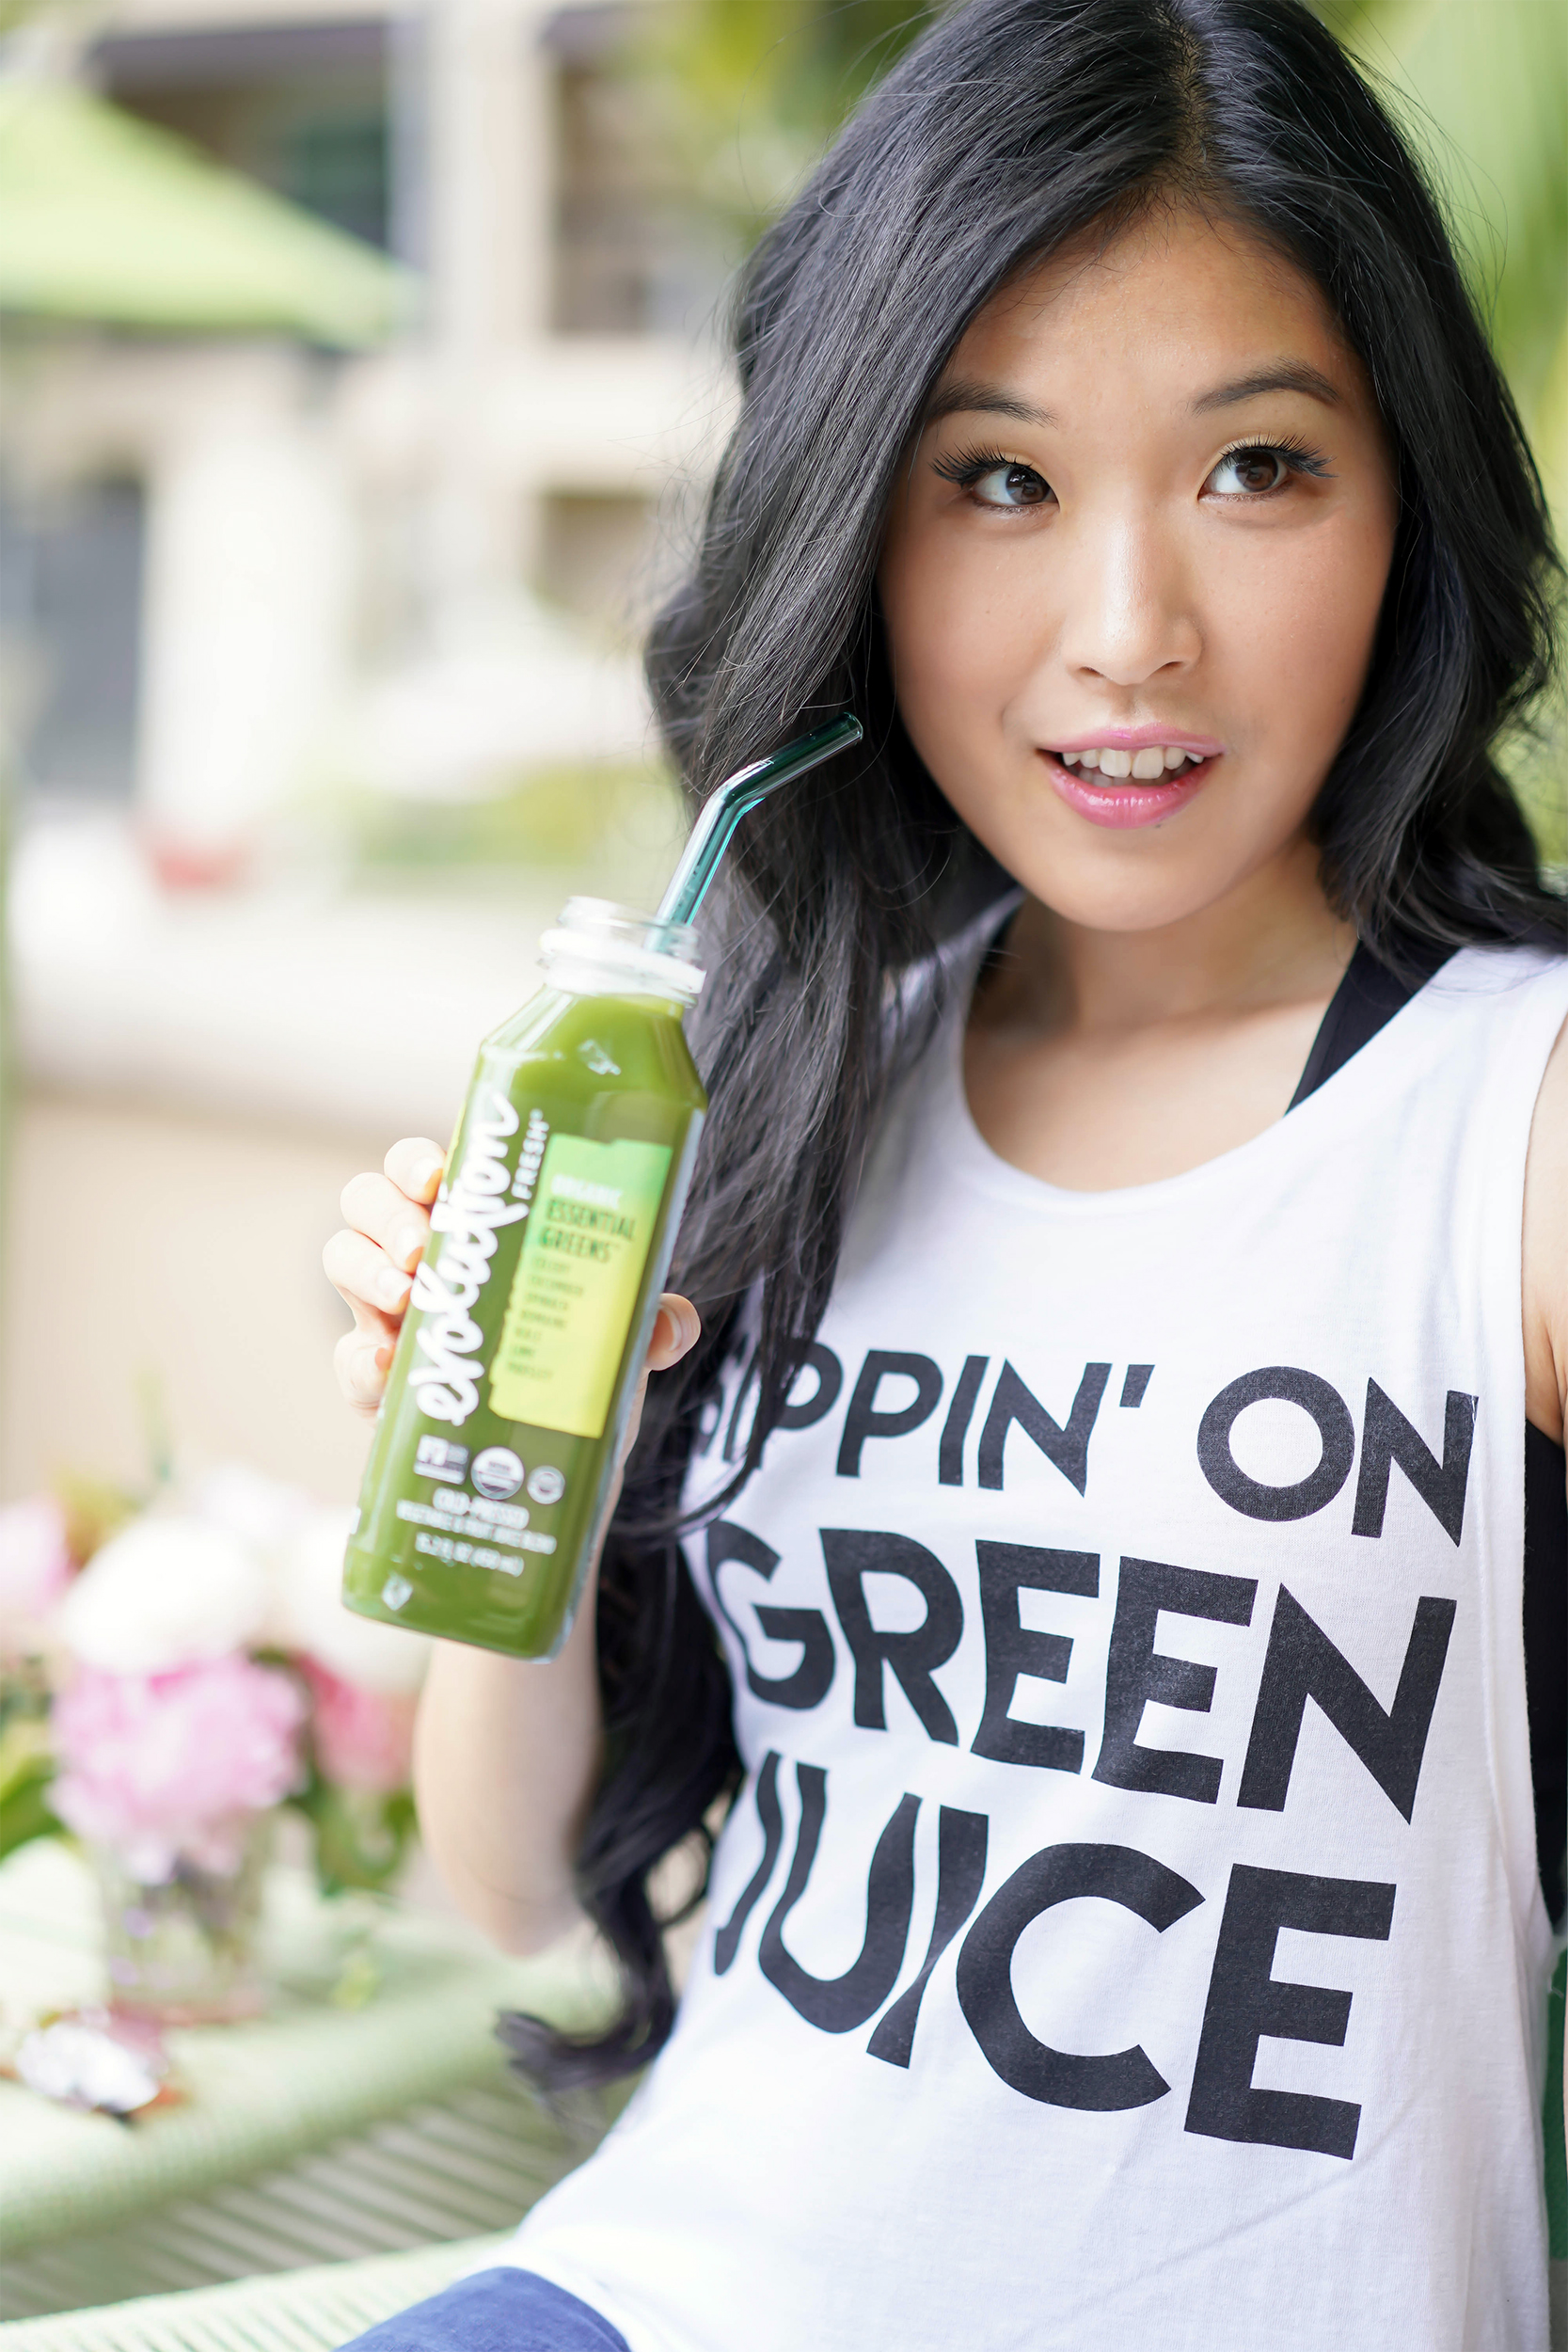 Top 5 Friday Best Green Juice, Sippin' on Green Juice Tank with Evolution Bottled Green Juice